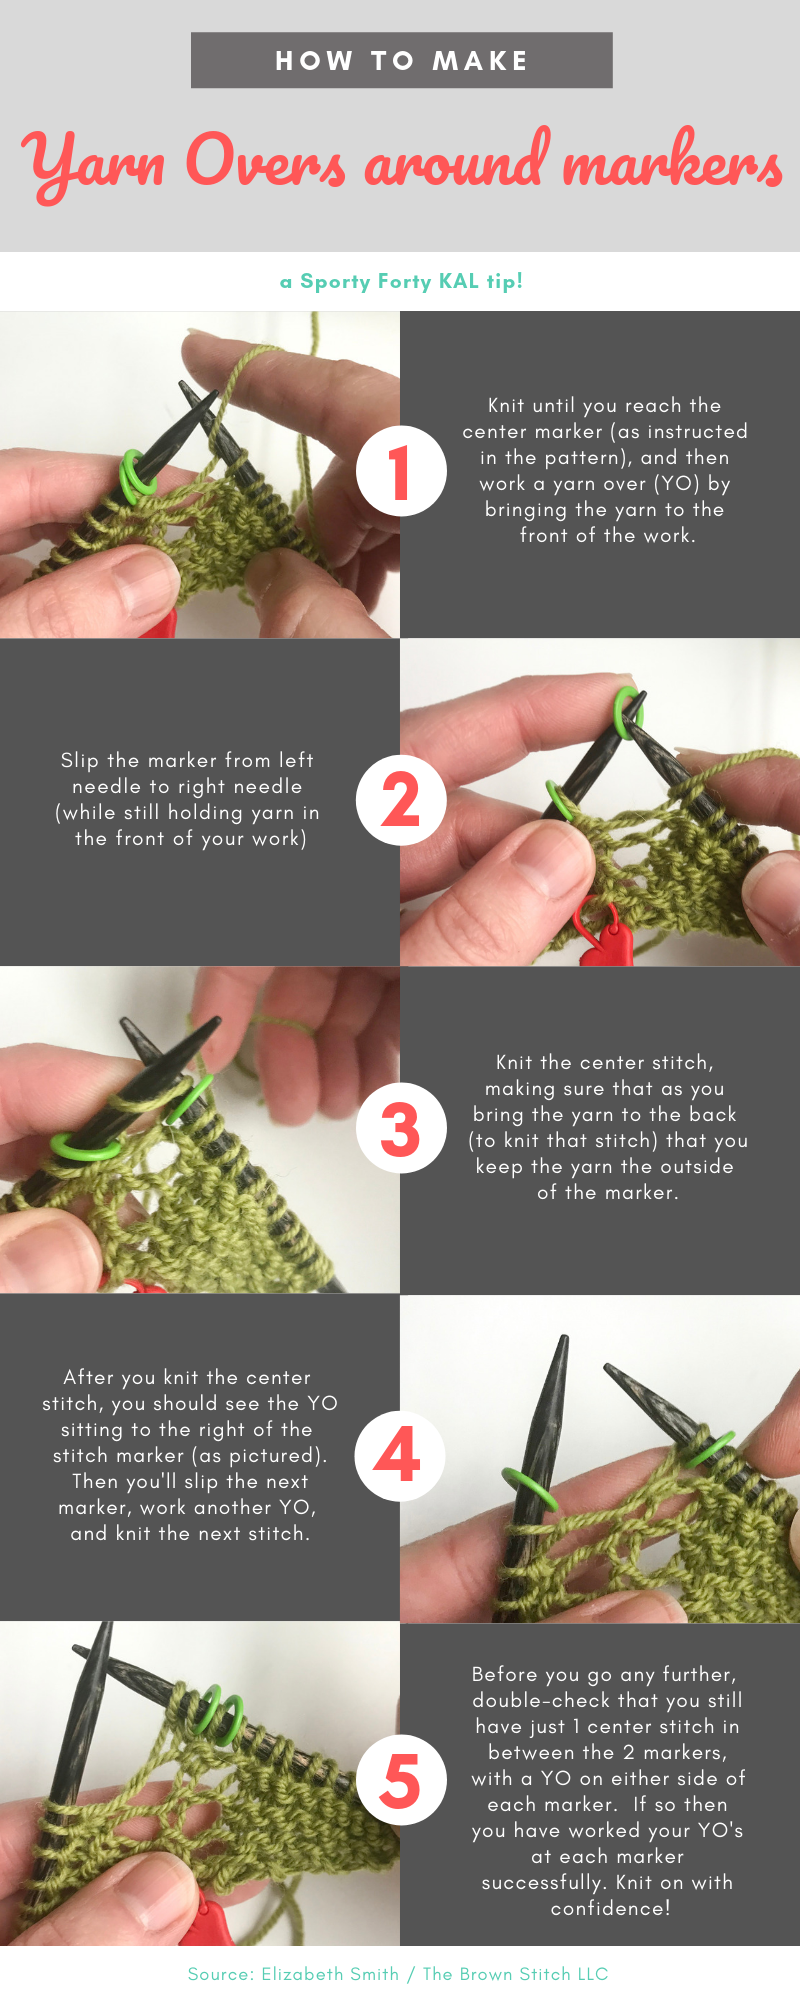 How to work a yarn-over (YO) in knitting